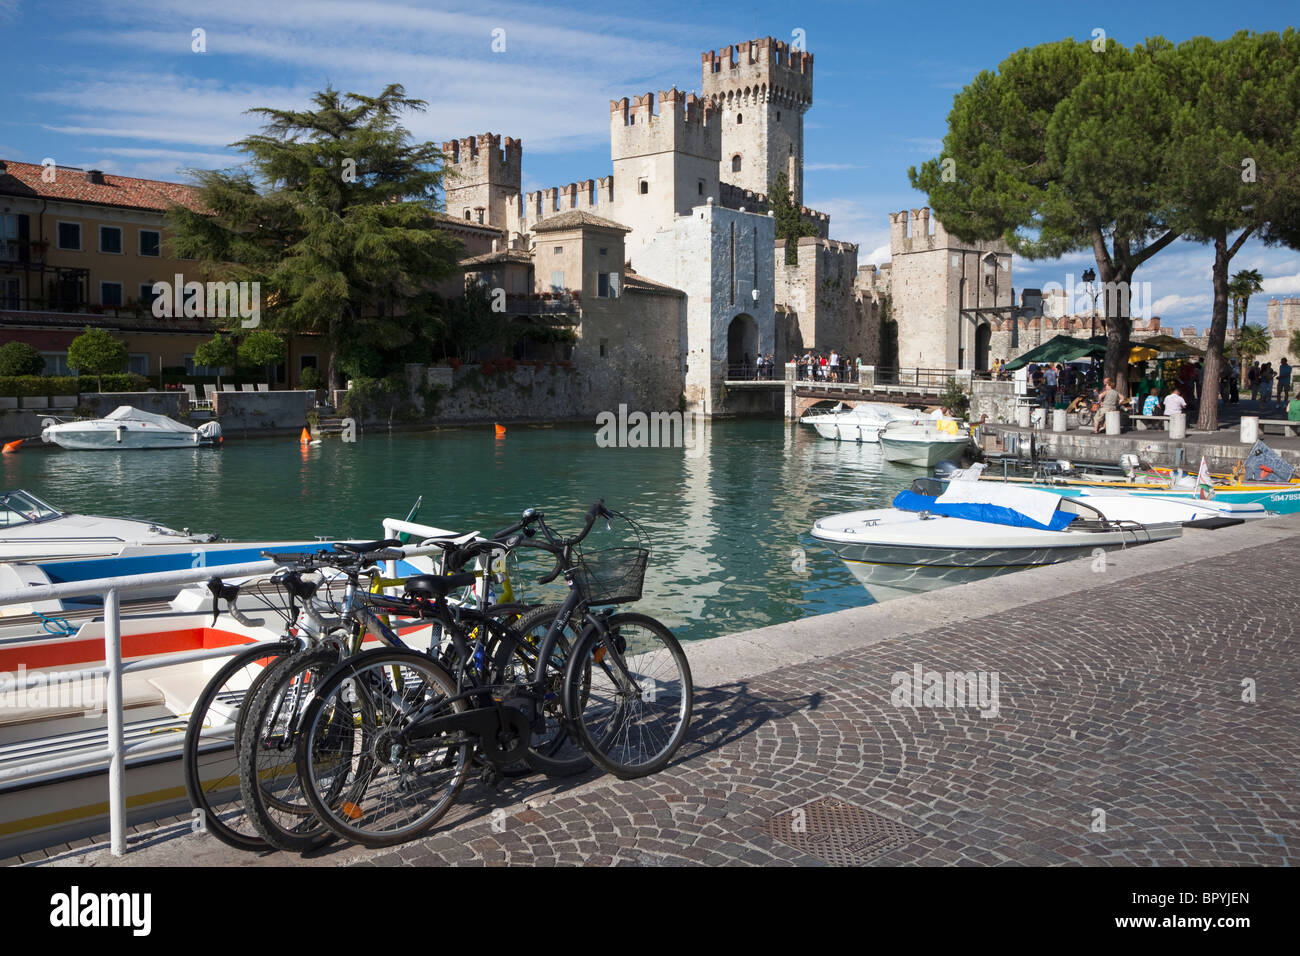 Castle at Sirmione, Lake Garda, Italy - Stock Image